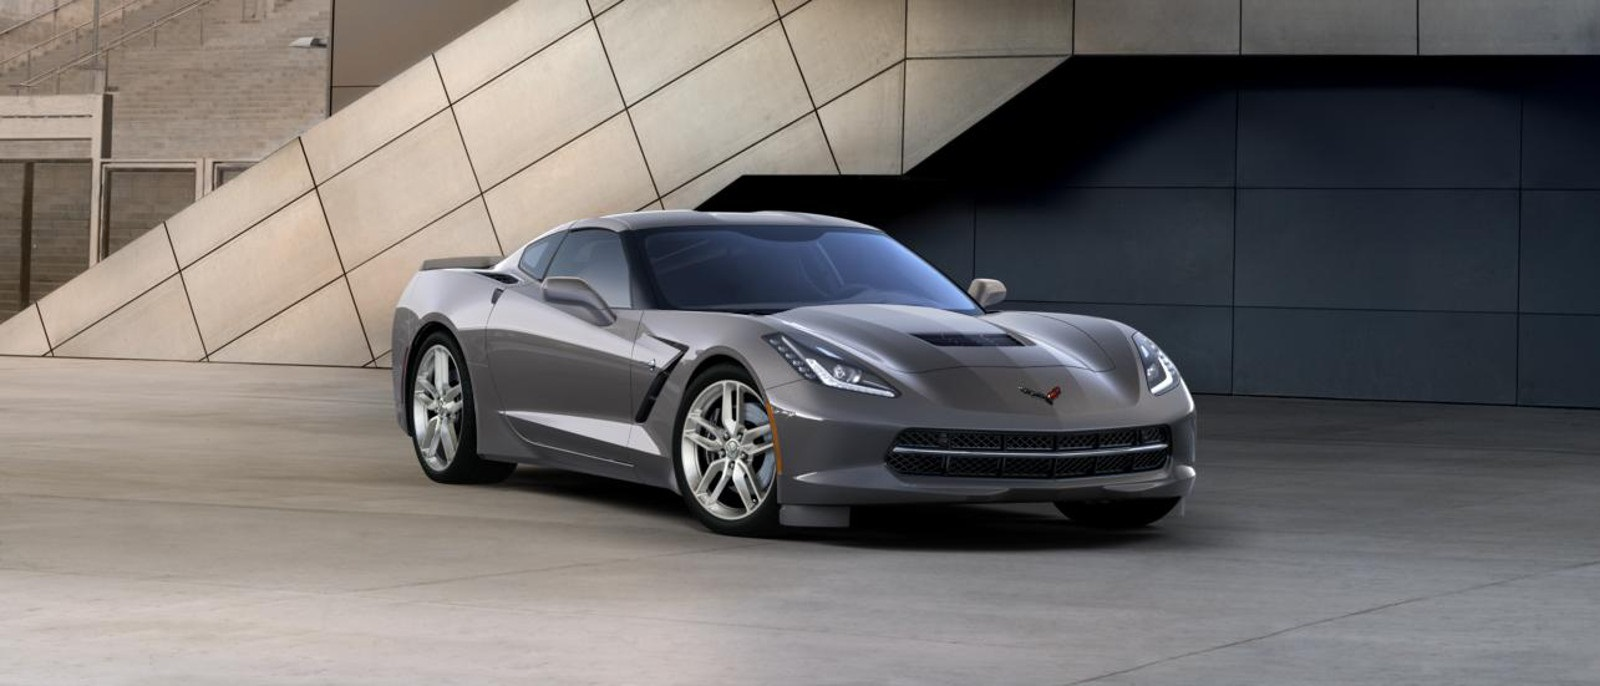 2016 Chevy Corvette Stingray Z51 3LT Coupe